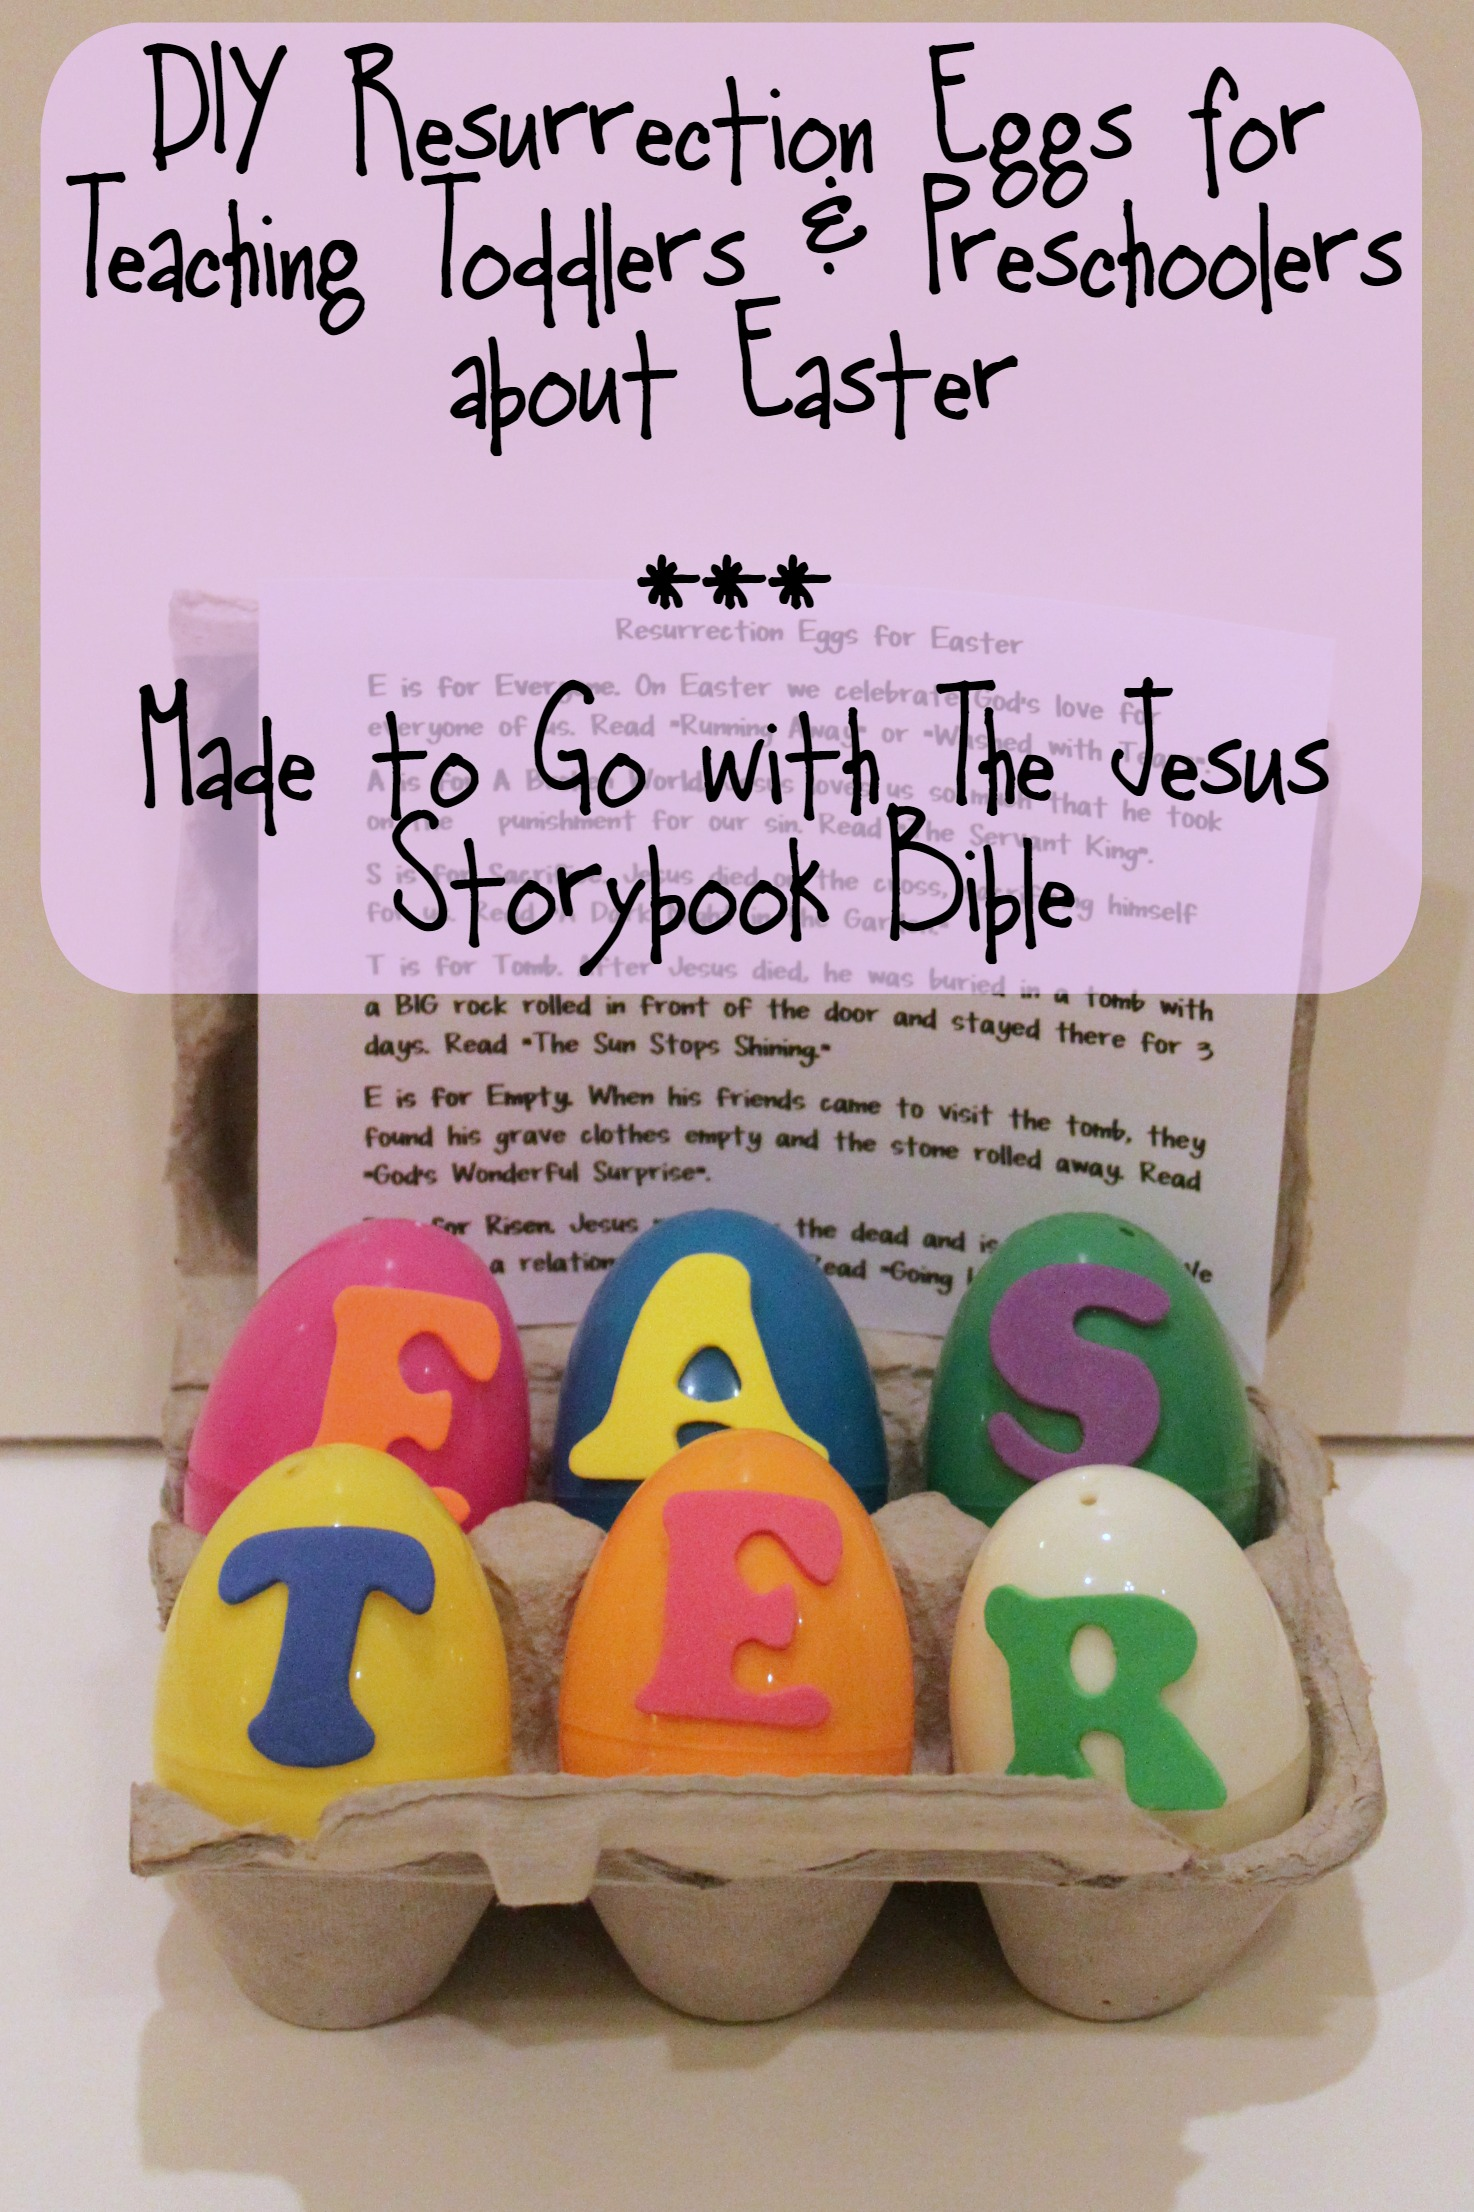 Diy Resurrection Eggs For Toddlers And Preschool Kids Bare Feet On